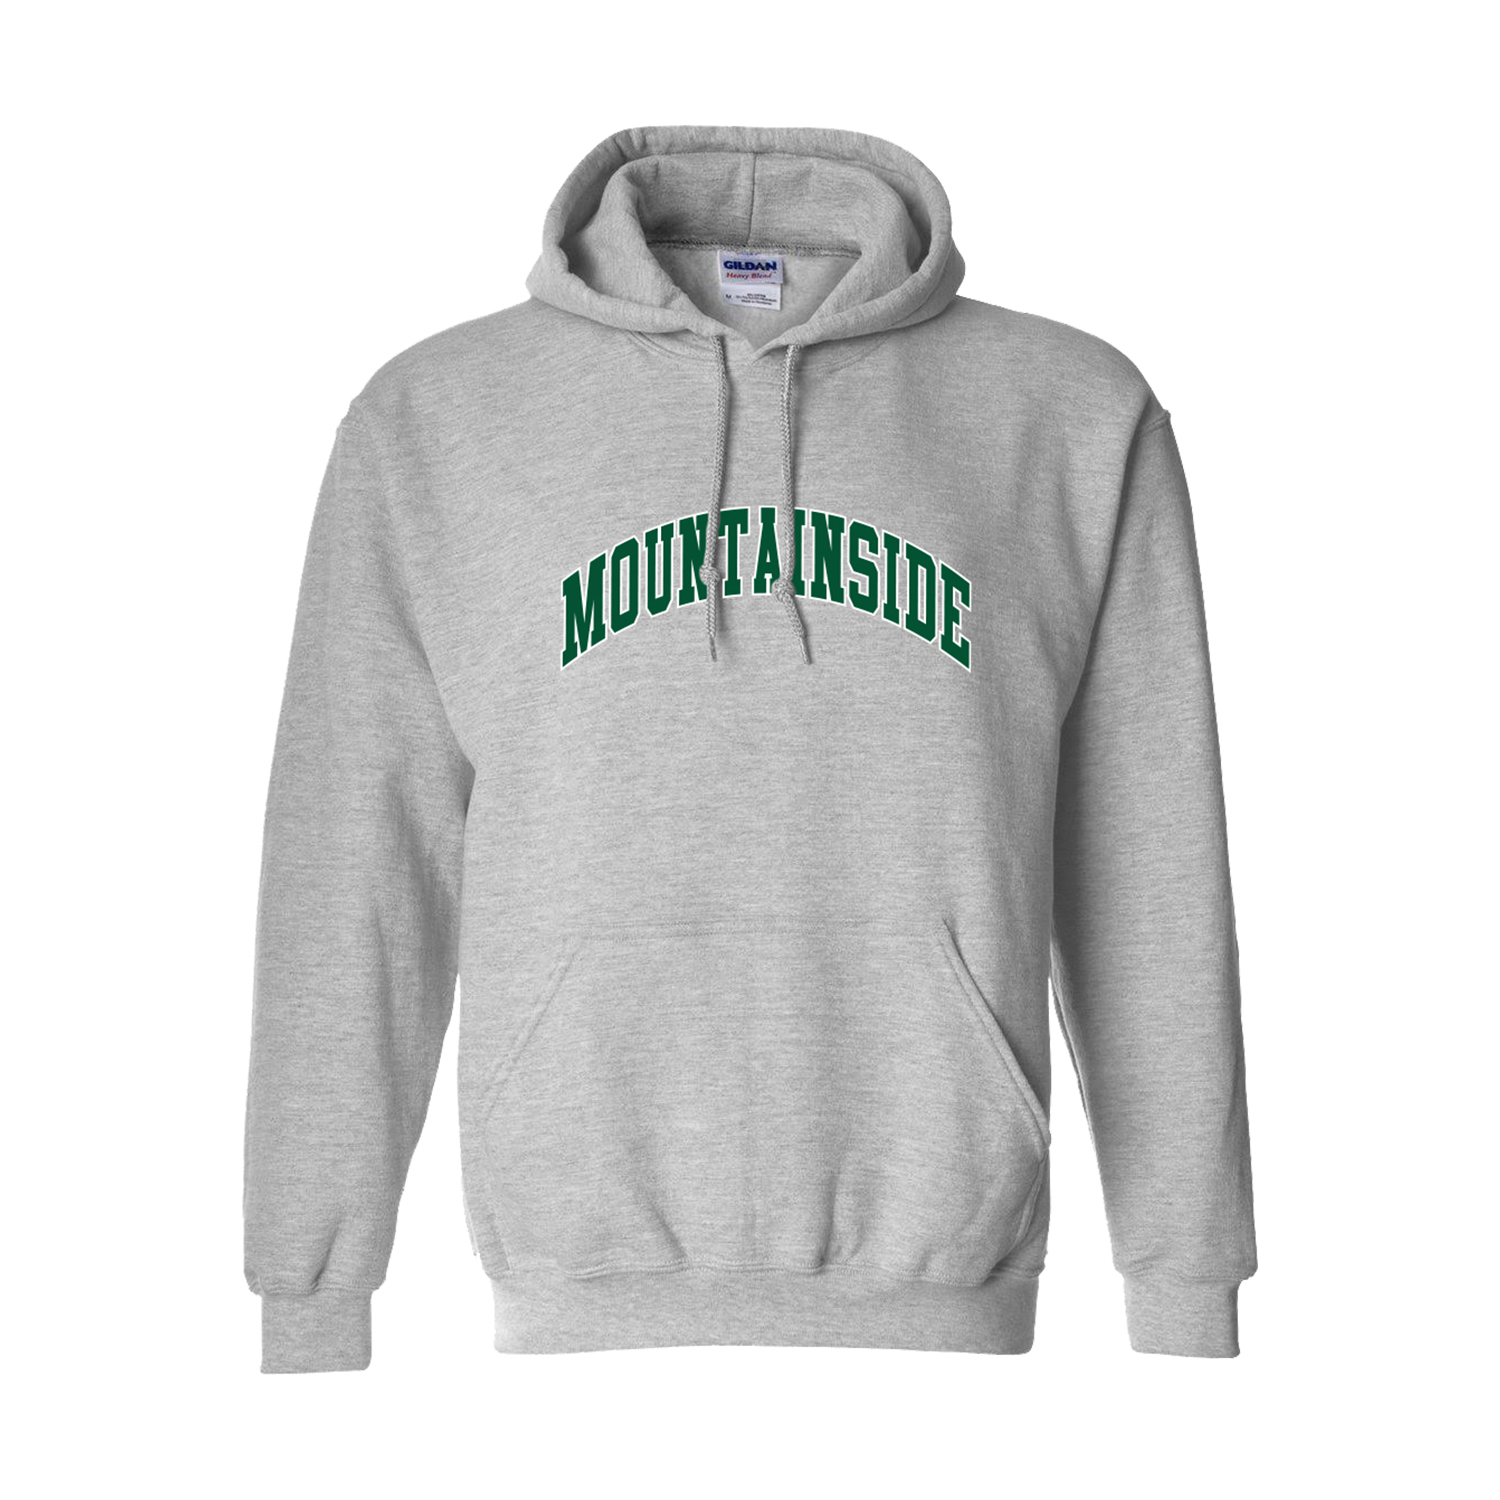 mountainside_arch_hoodie